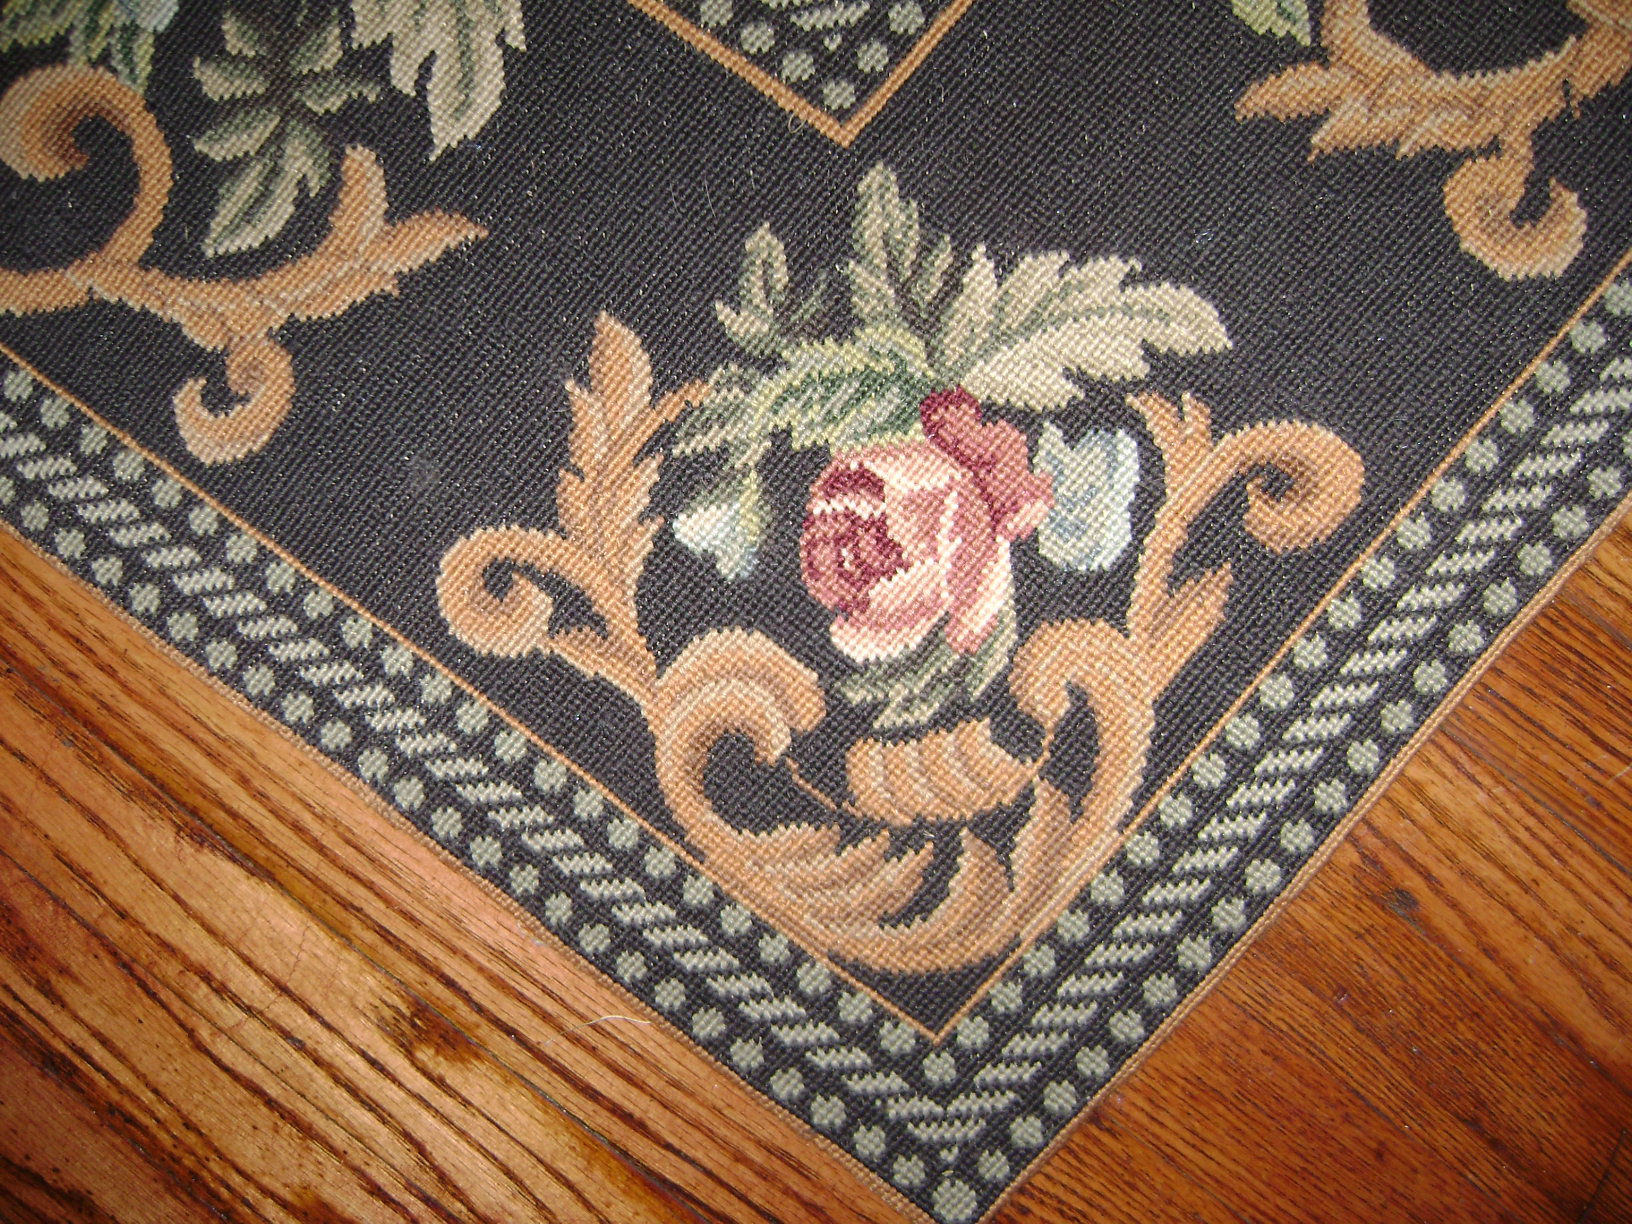 Cynthia's floral  needlepoint rug 3